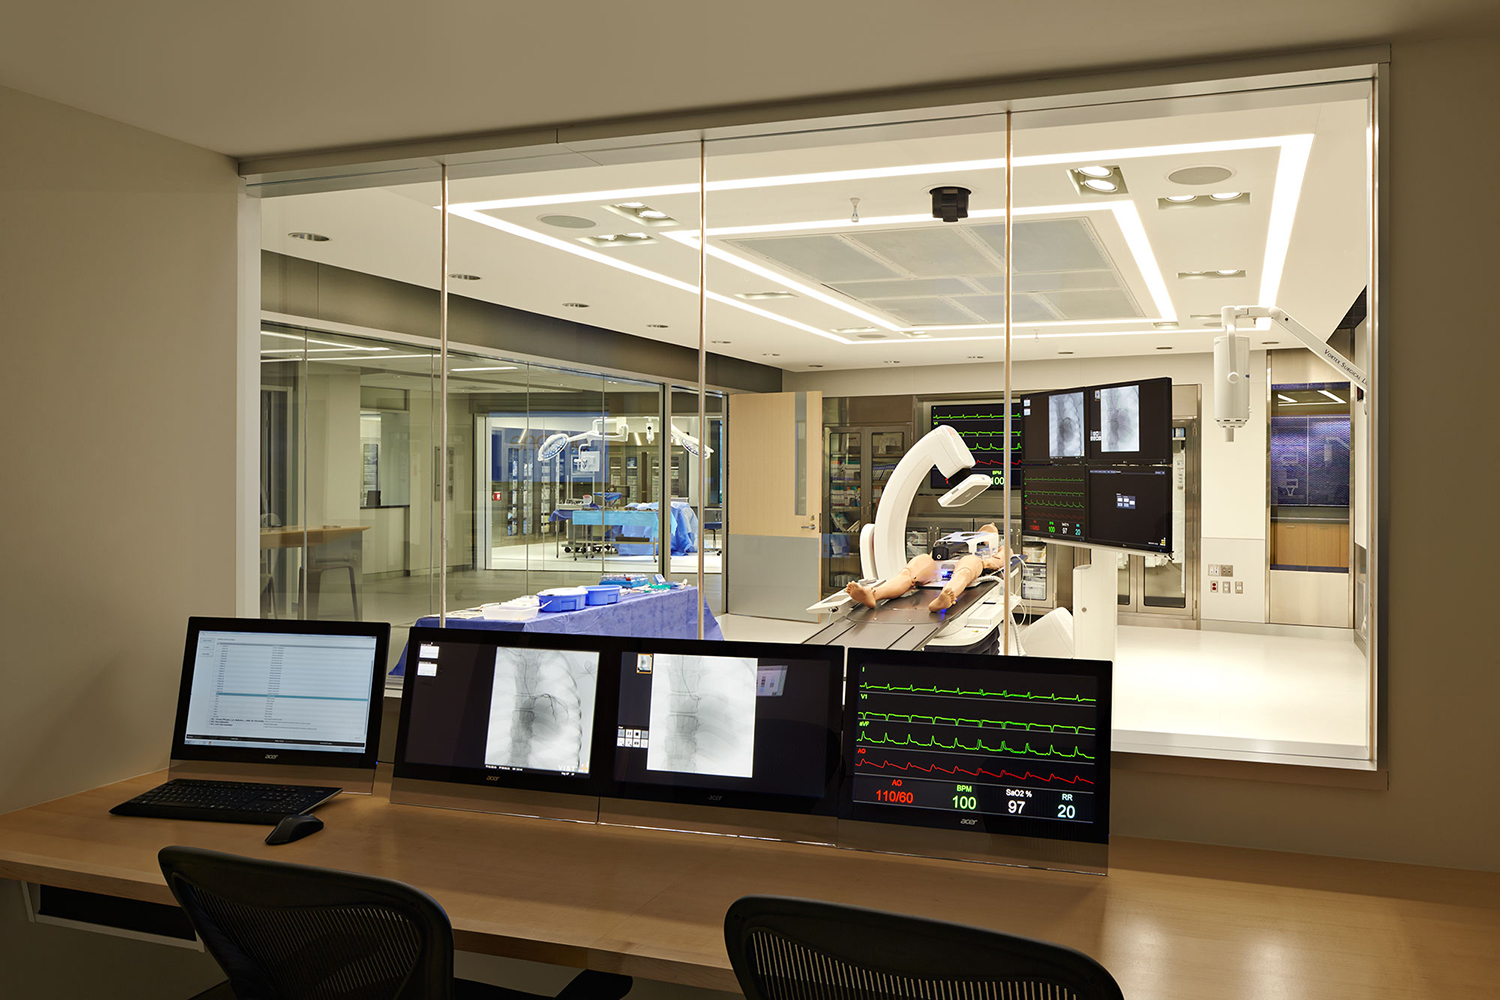 Mdco Medical Simulation Center Bsa Design Awards